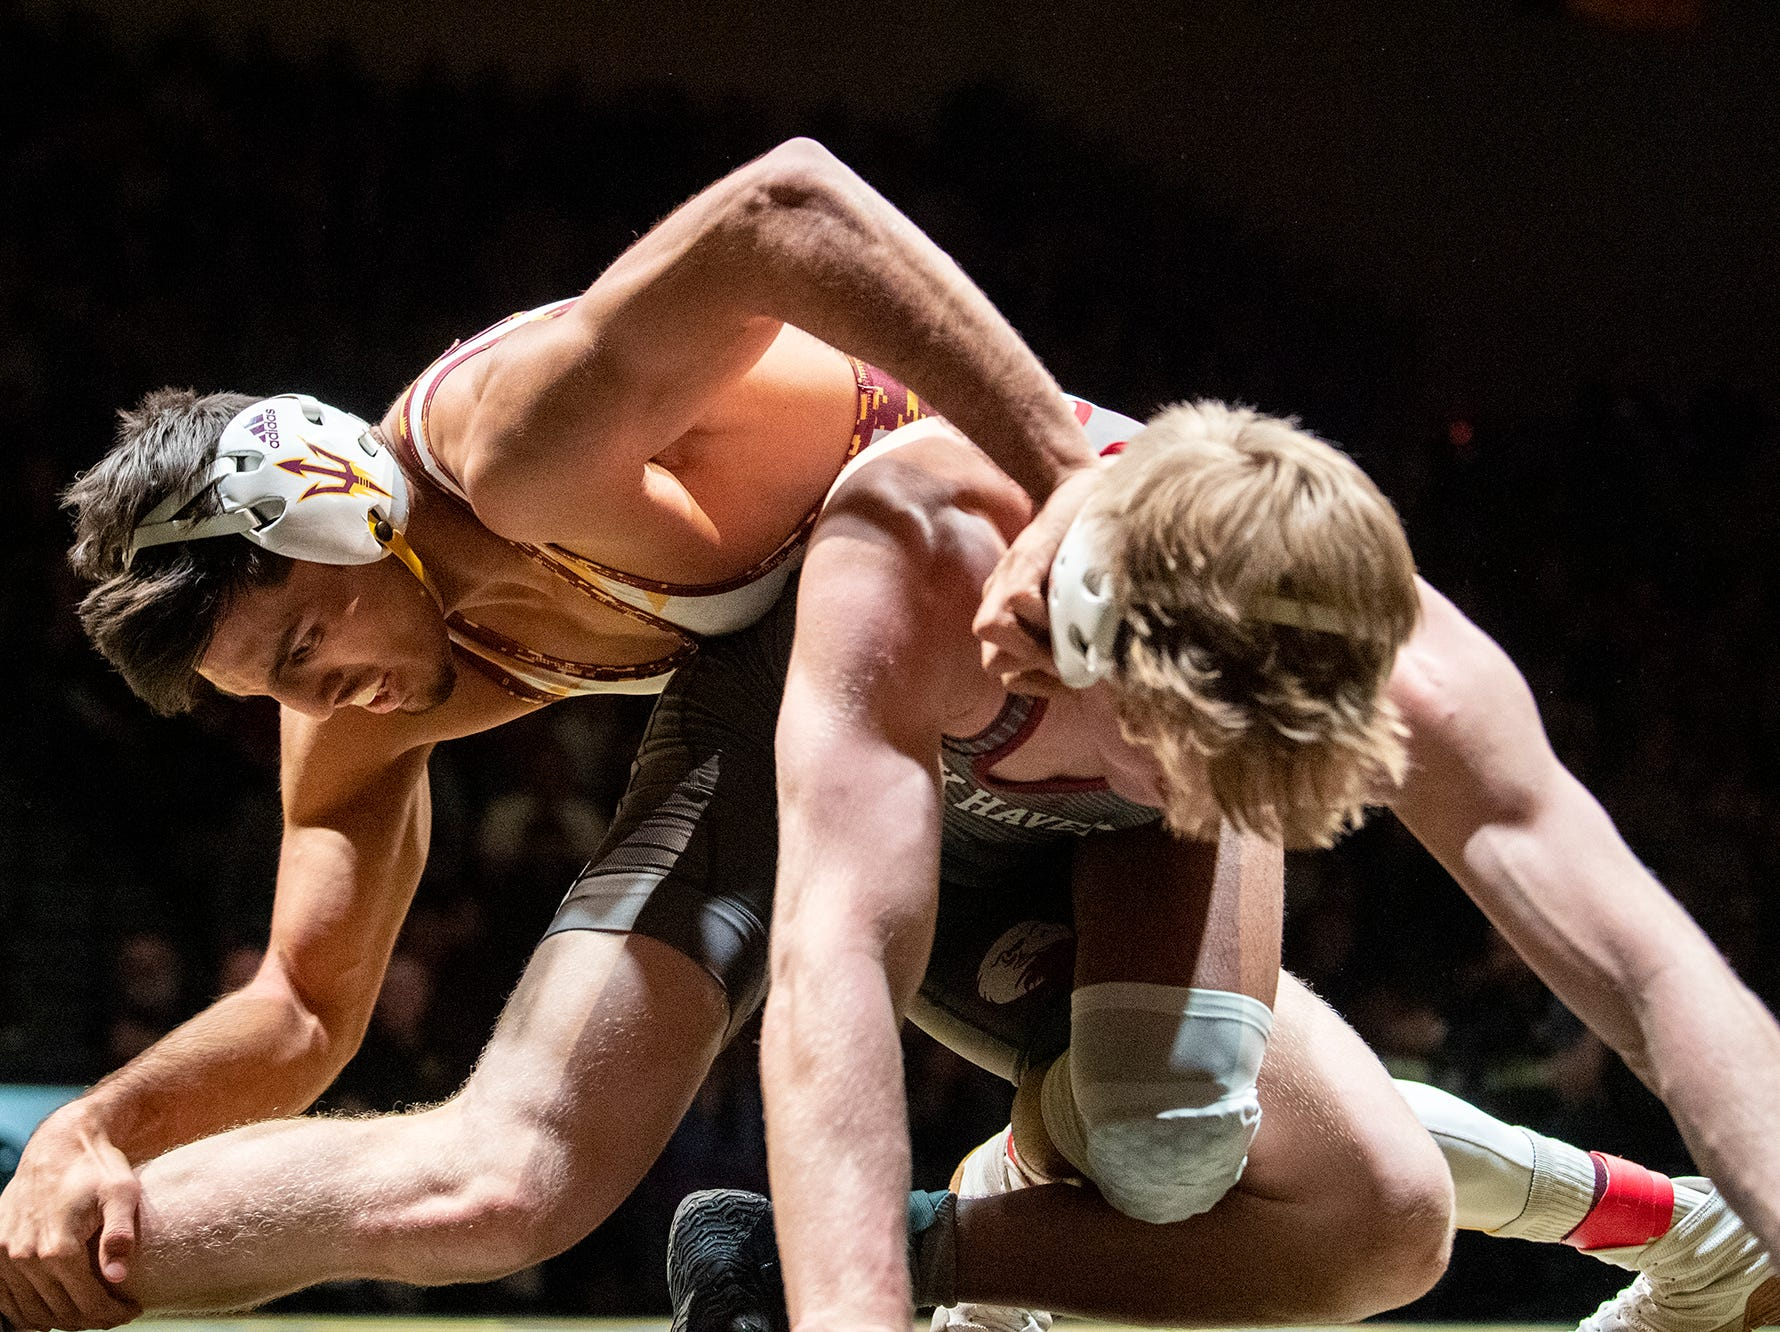 Arizona State's Zahid Valencia, left, wrestles Lock Haven's Jared Siegrist during the 174-pound bout at Red Lion's Fitzkee Athletic Center on Friday, Jan. 25, 2019. Valencia beat Siegrist, 14-4. No. 22 Lock Haven upset No. 12 Arizona State, 23-14, in the first ever 'Rumble in the Jungle.'